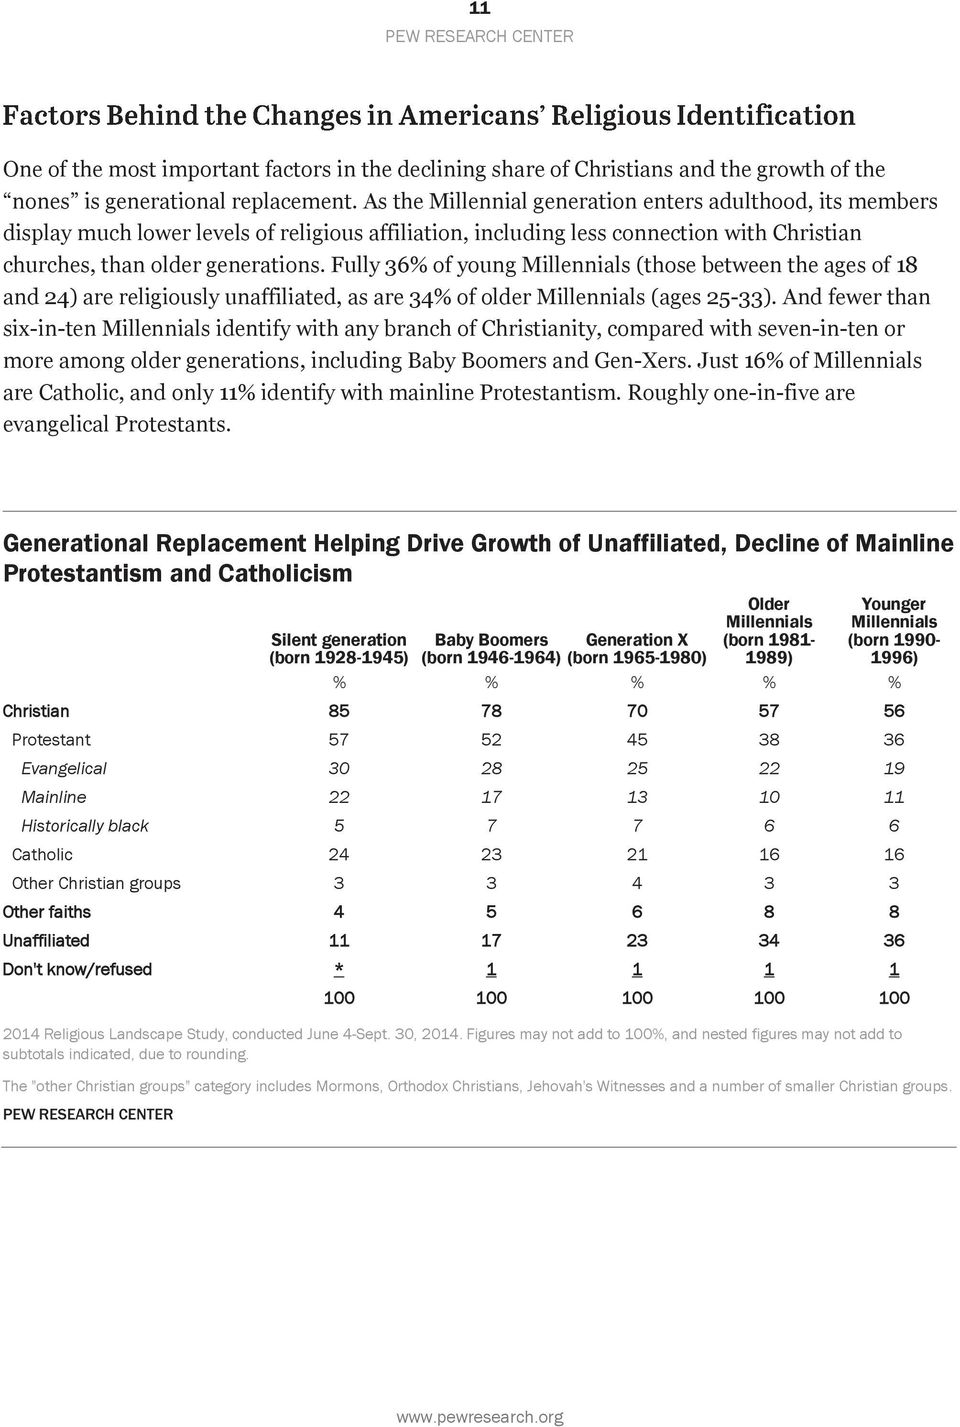 Fully 36% of young Millennials (those between the ages of 18 and 24) are religiously unaffiliated, as are 34% of older Millennials (ages 25-33).